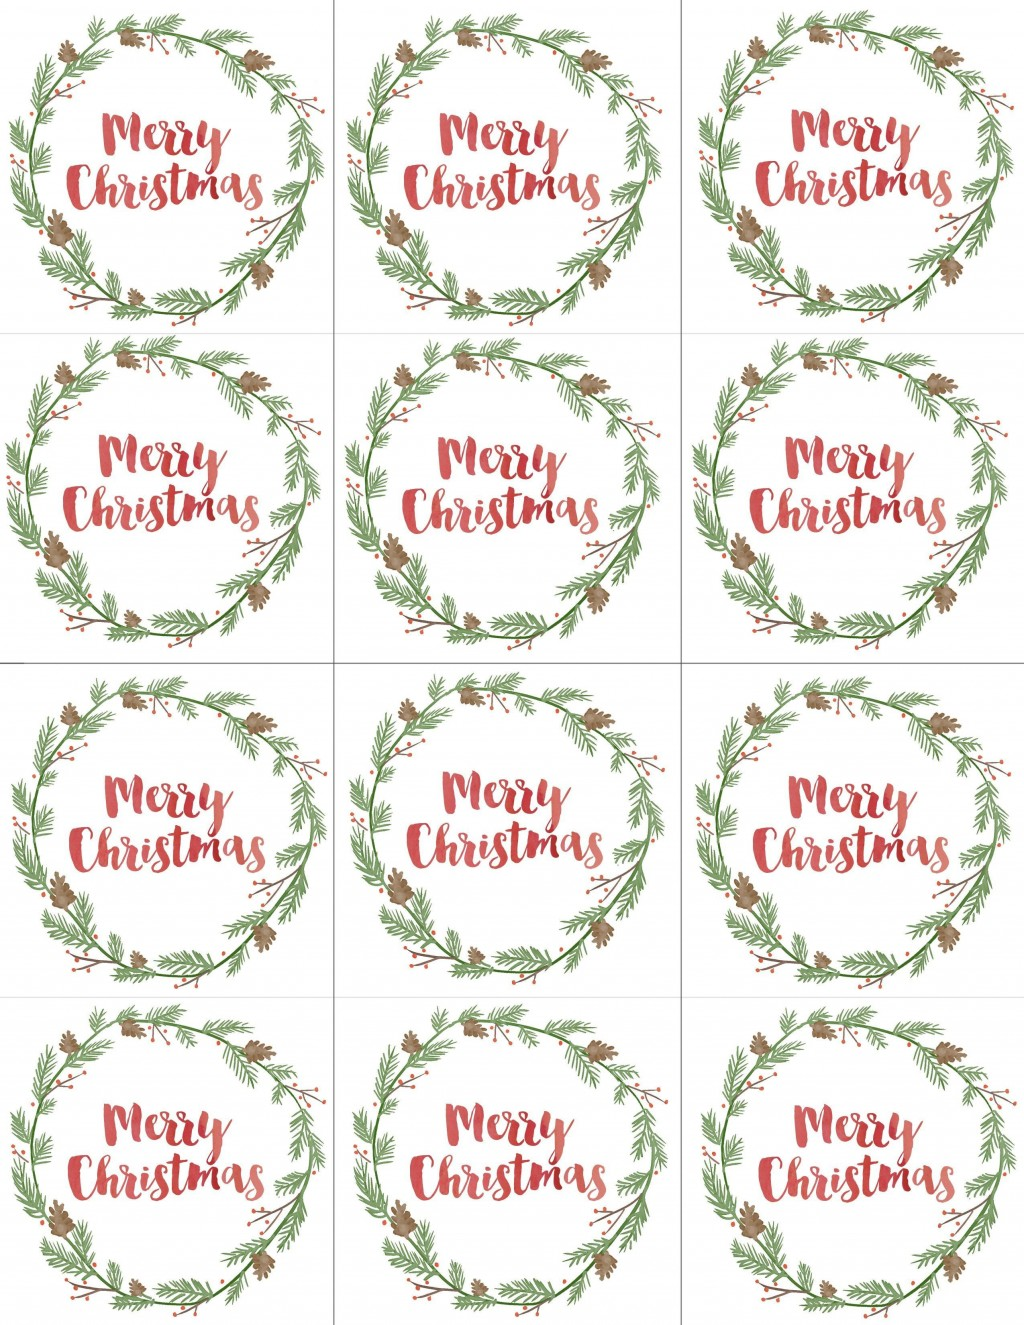 003 Unbelievable Printable Christma Gift Tag Template Concept  Templates Free Holiday For WordLarge